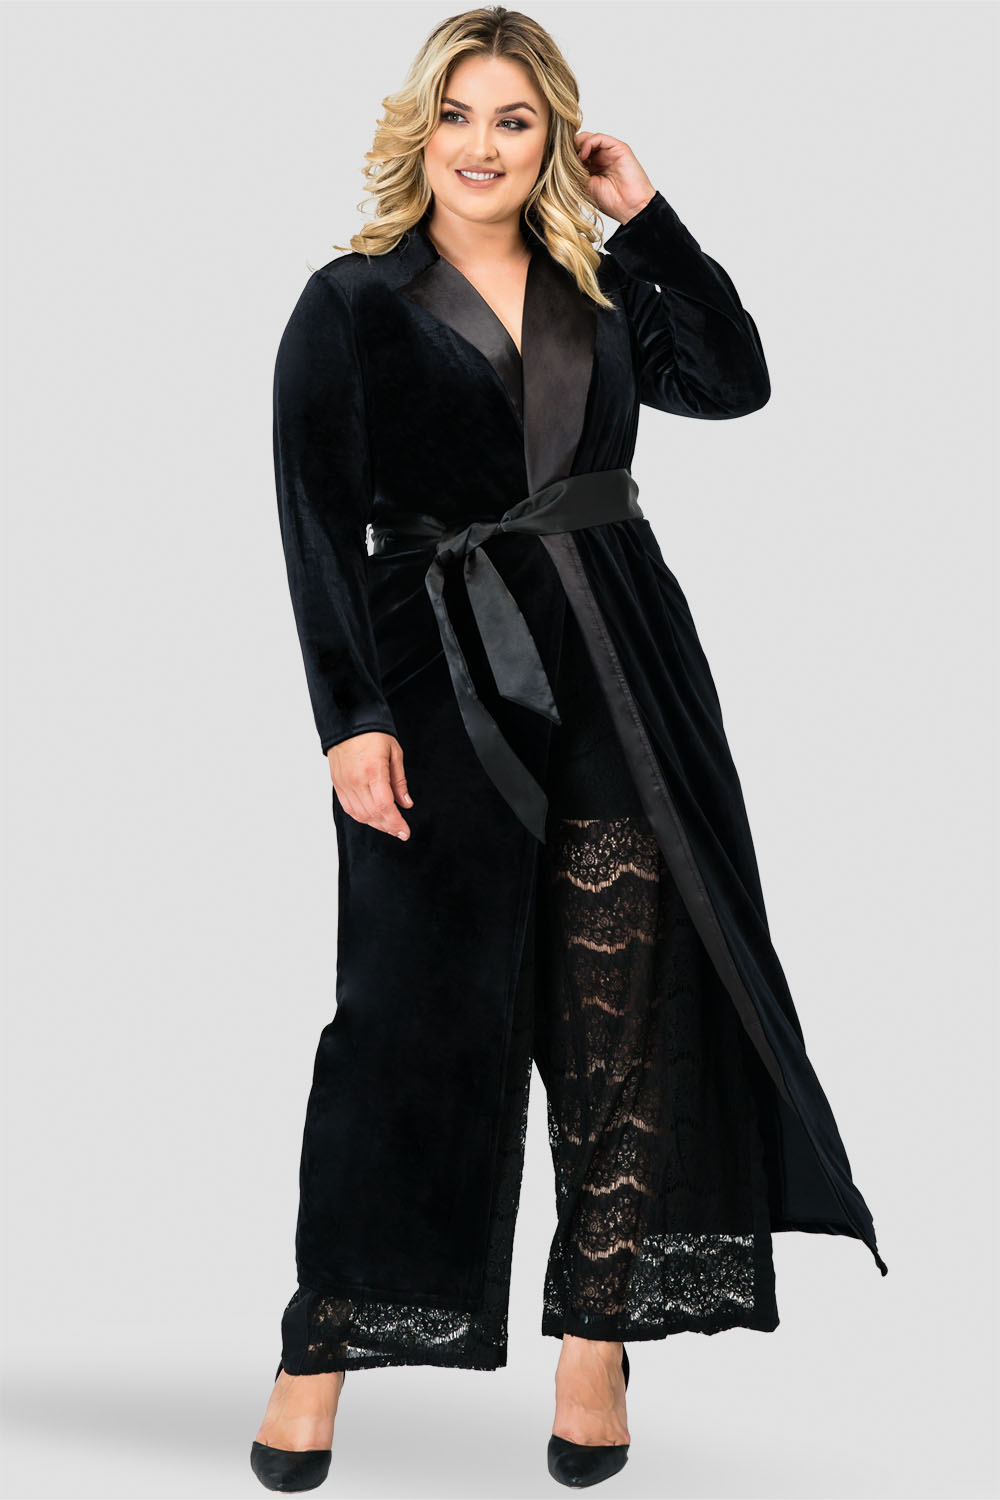 Plus Size Freya Black Stretch Velvet Wrap Midi Coat  Dress with Satin Lapel